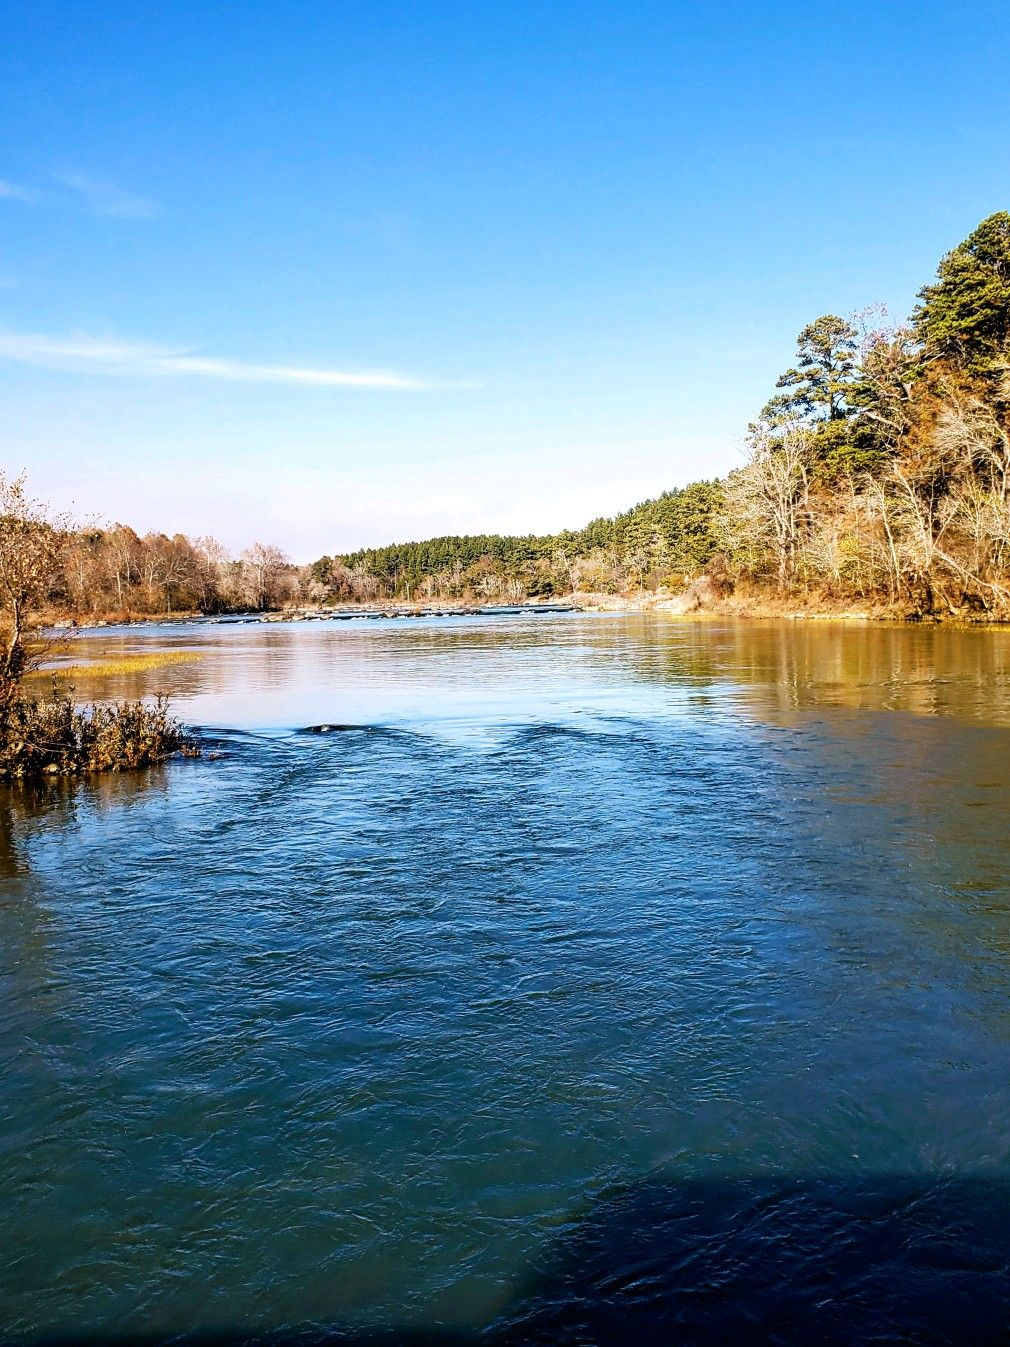 Pin by Tracie Kruse on Broken Bow Broken bow, Outdoor, Water